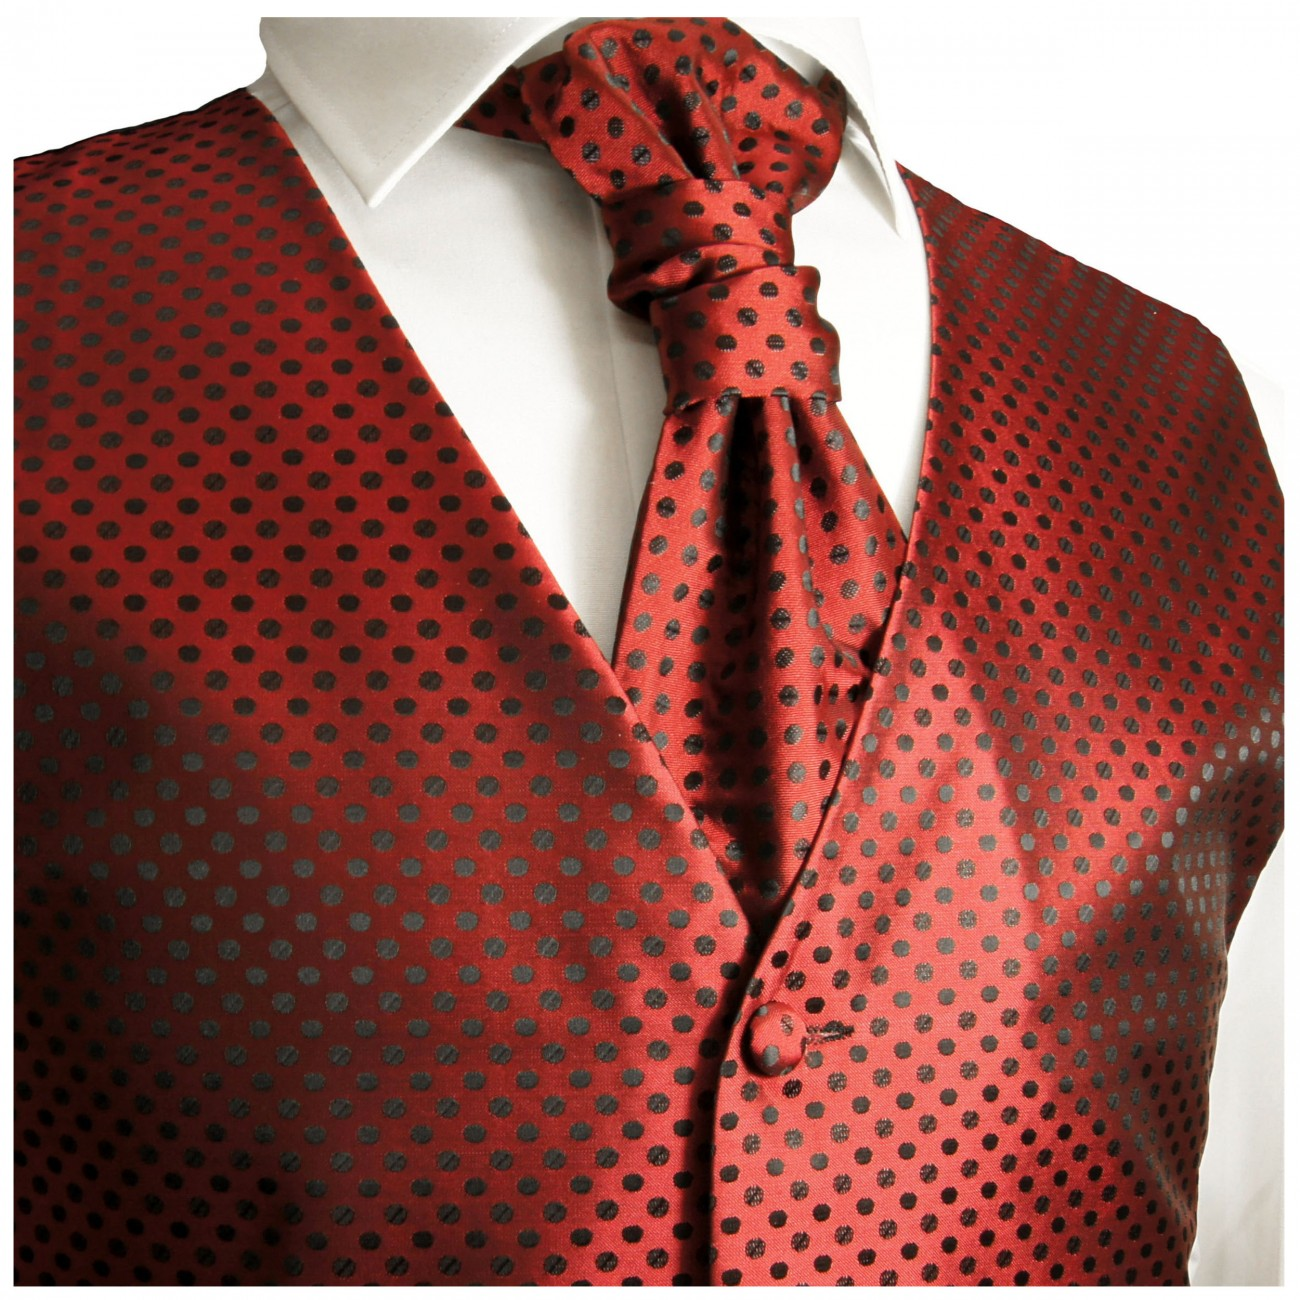 WEDDING VEST SET red black and Wedding Shirt white V22HL8